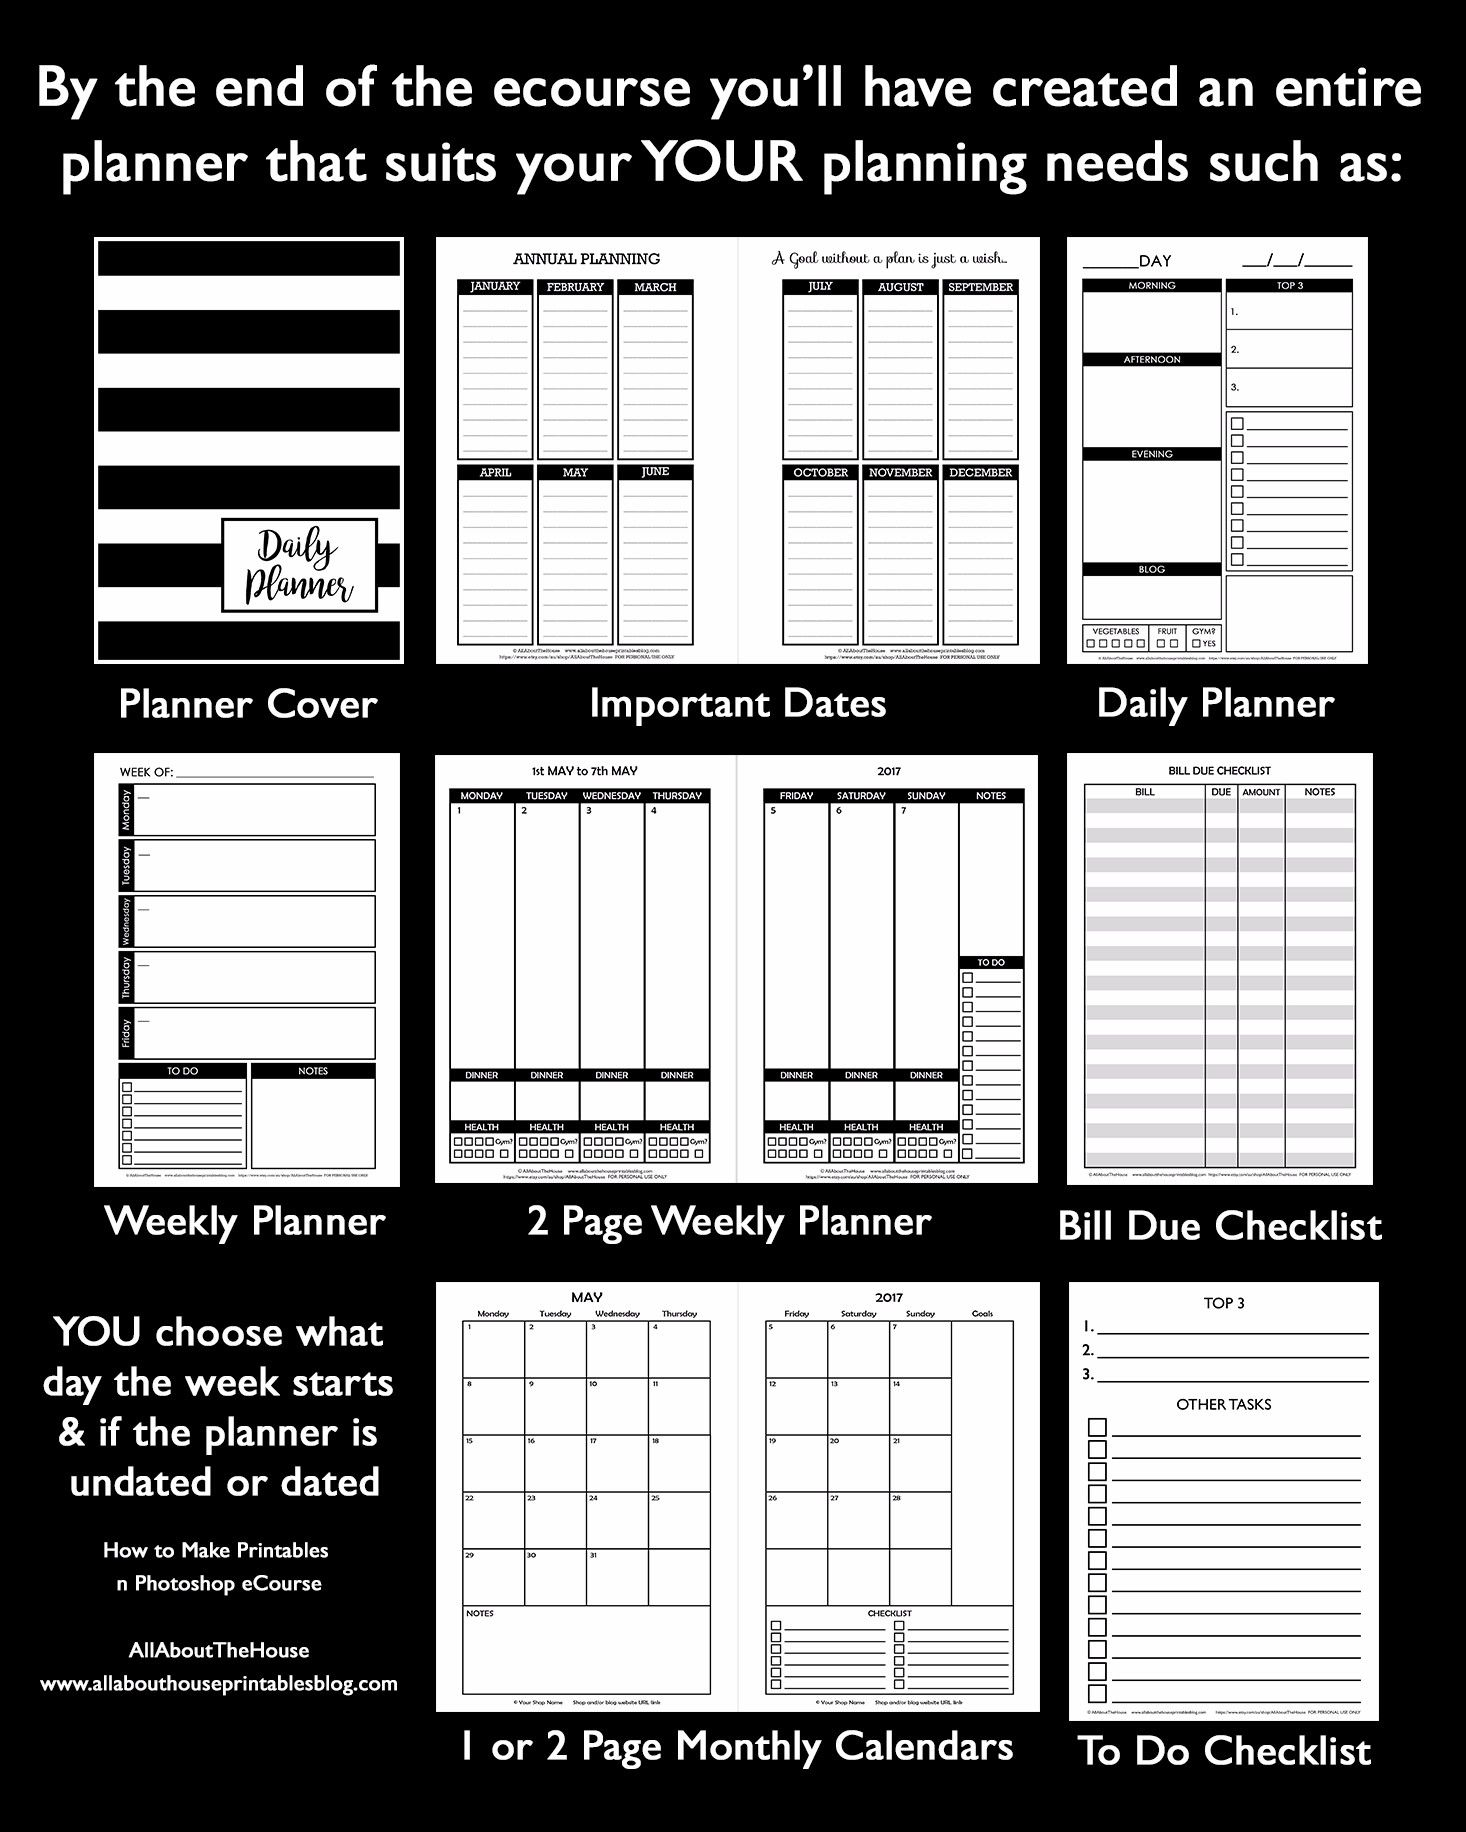 How To Make Printables In Photo Build A Ger Online Business